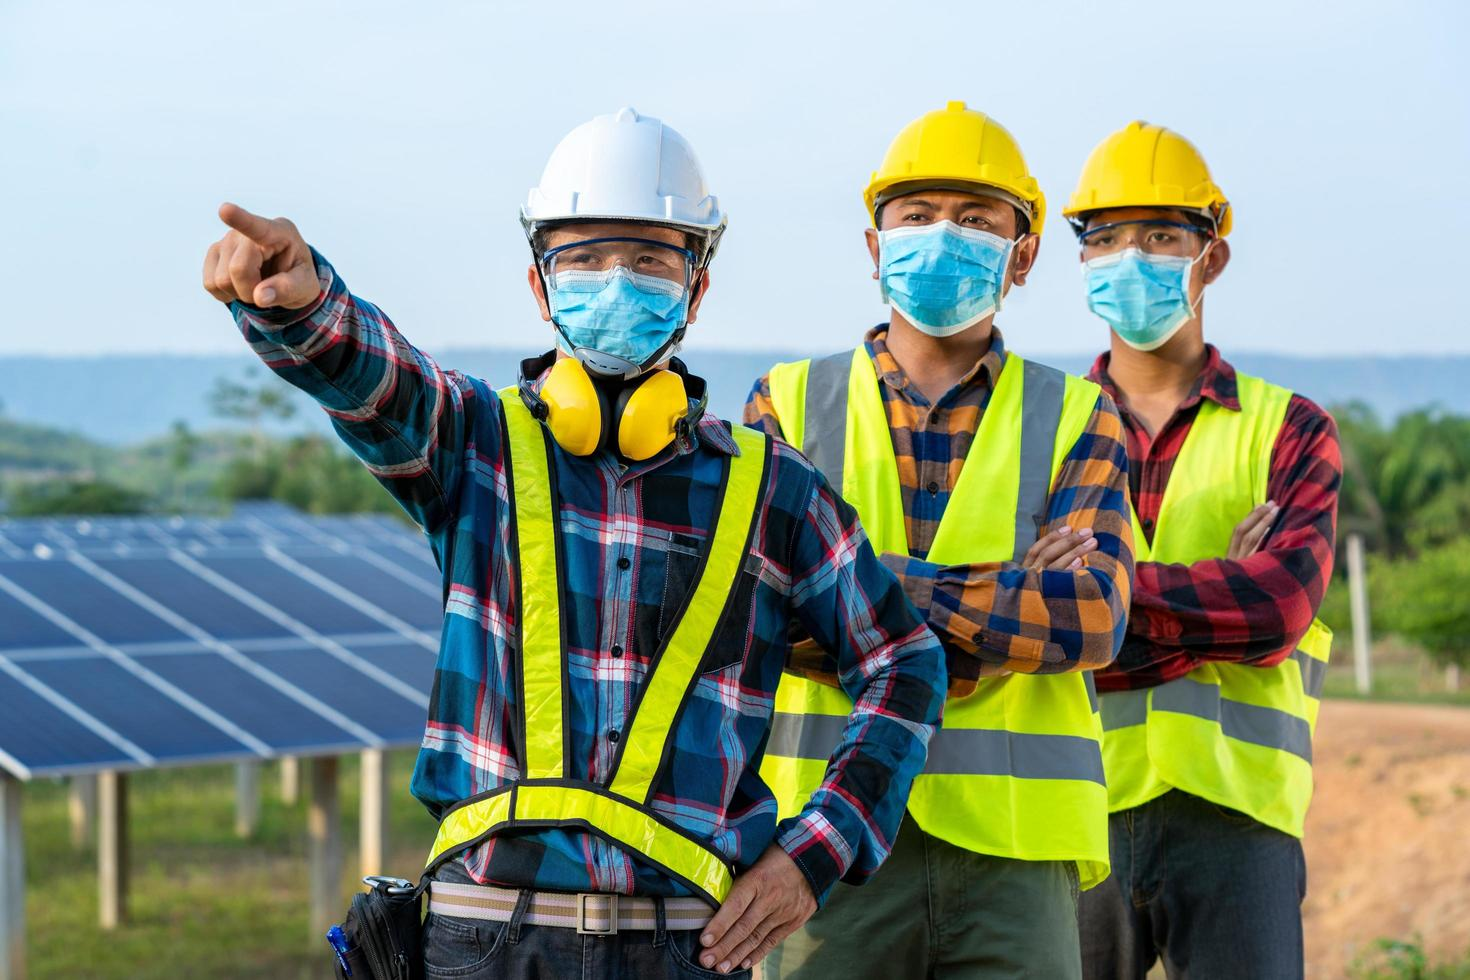 Masked workers next to solar panel photo